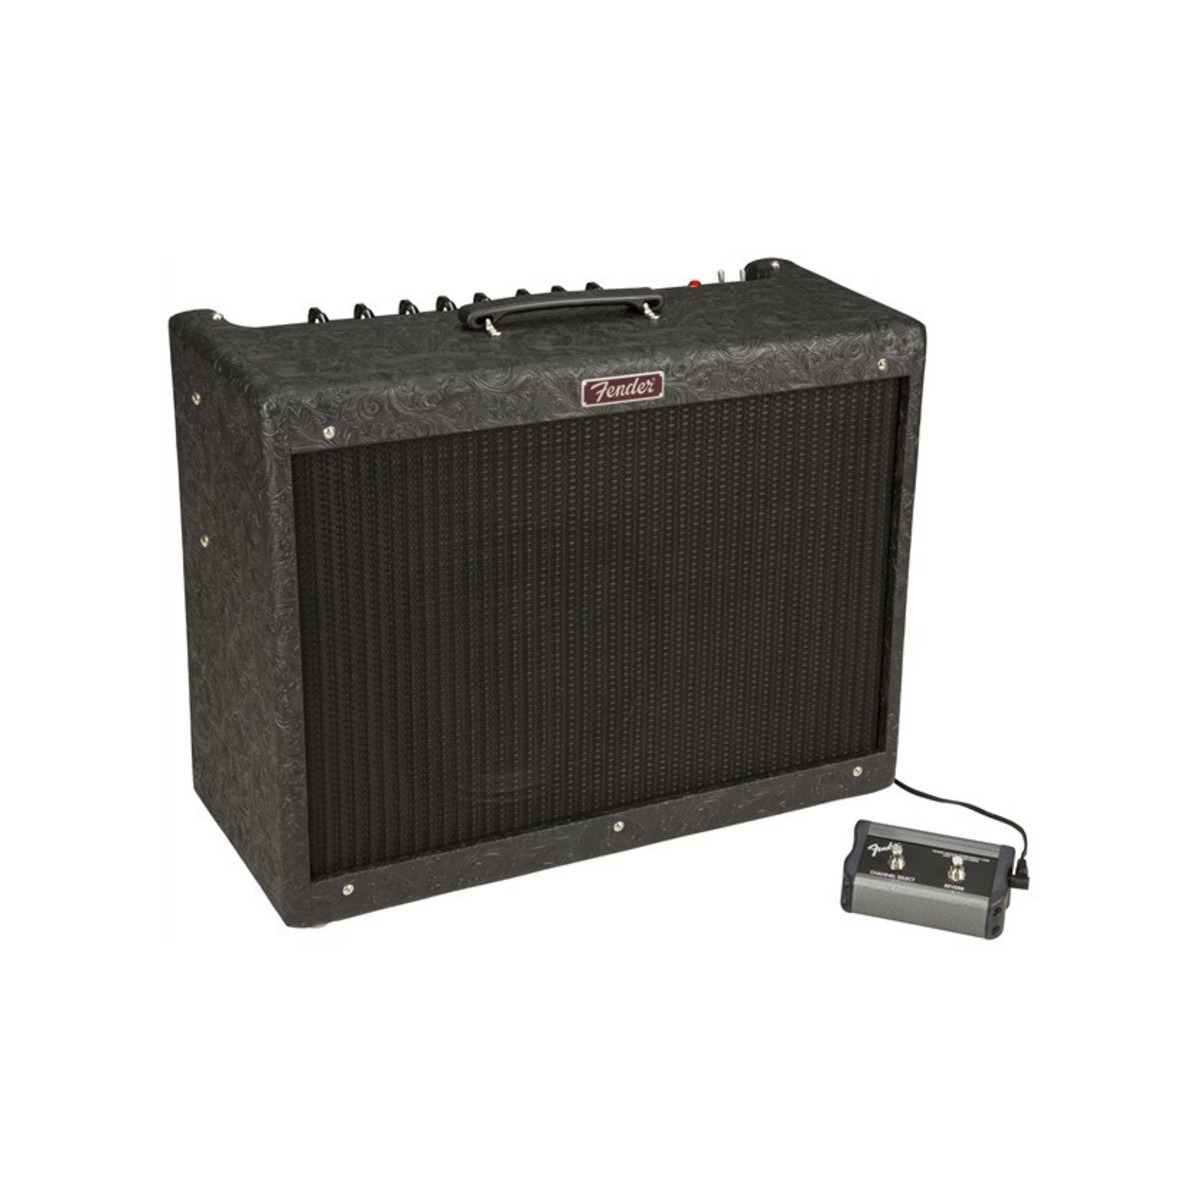 fender blues deluxe reissue ltd black western b stock at gear4music. Black Bedroom Furniture Sets. Home Design Ideas